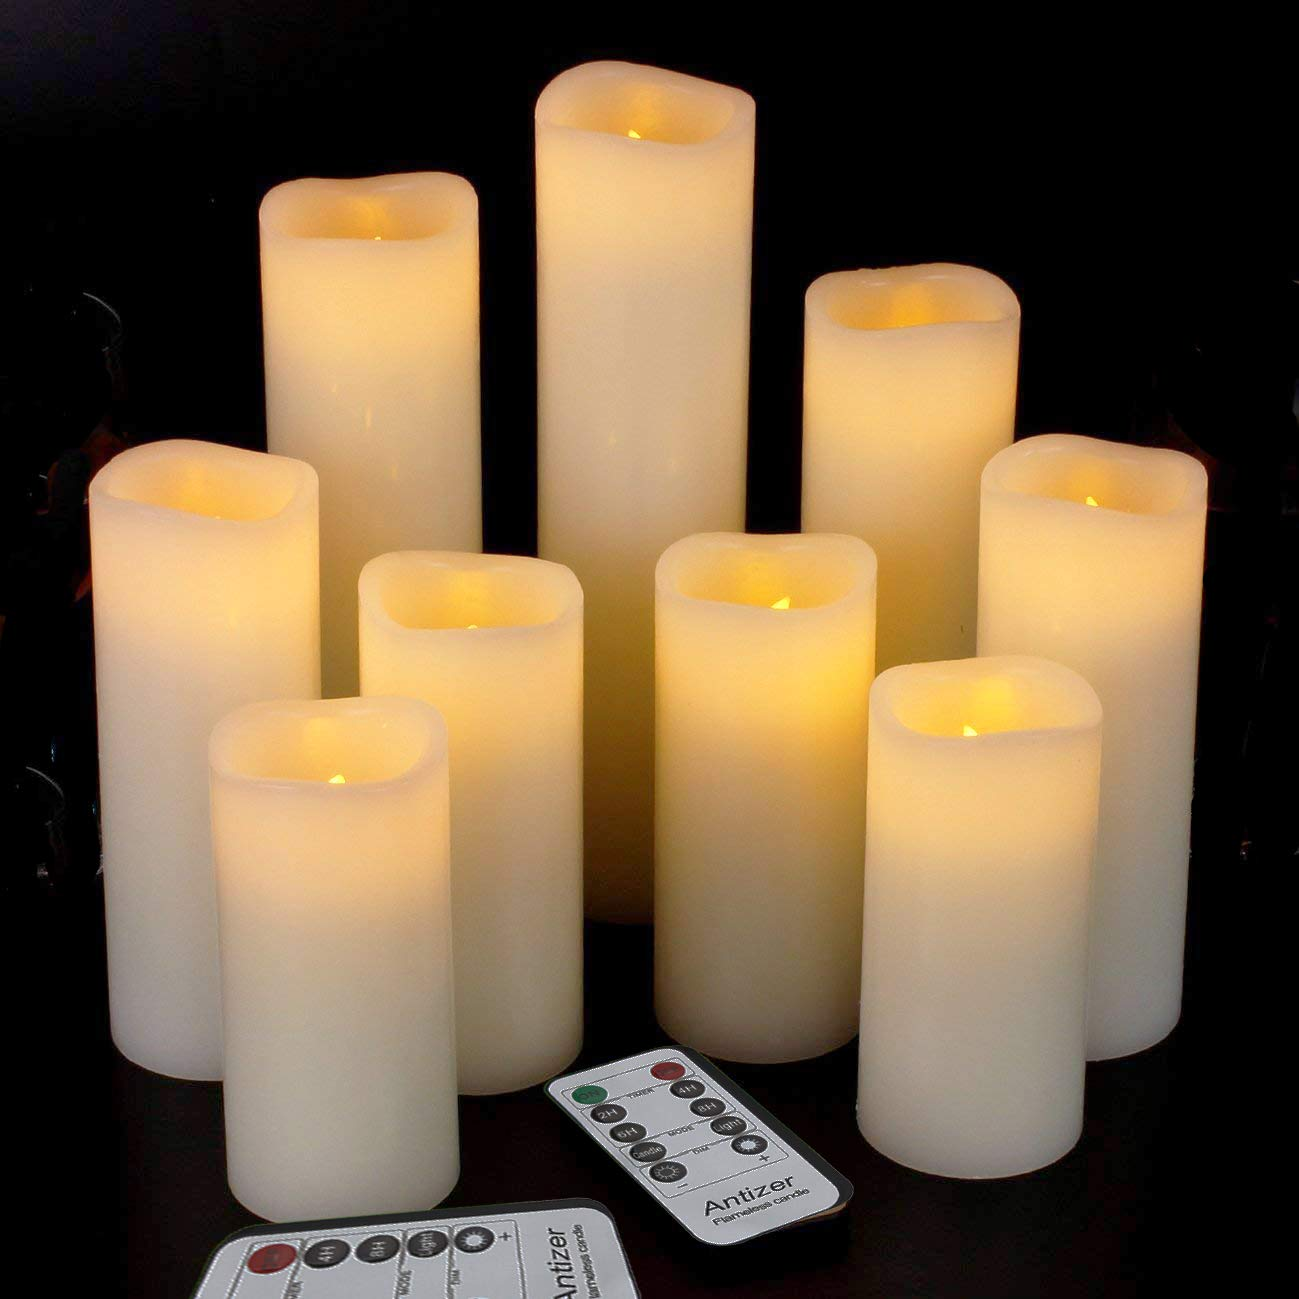 Antizer Flameless Candles Led Candles Pack of 9 (H 4'' 5'' 6'' 7'' 8'' 9'' x D 2.2'') Ivory Real Wax Battery Candles with Remote Timer